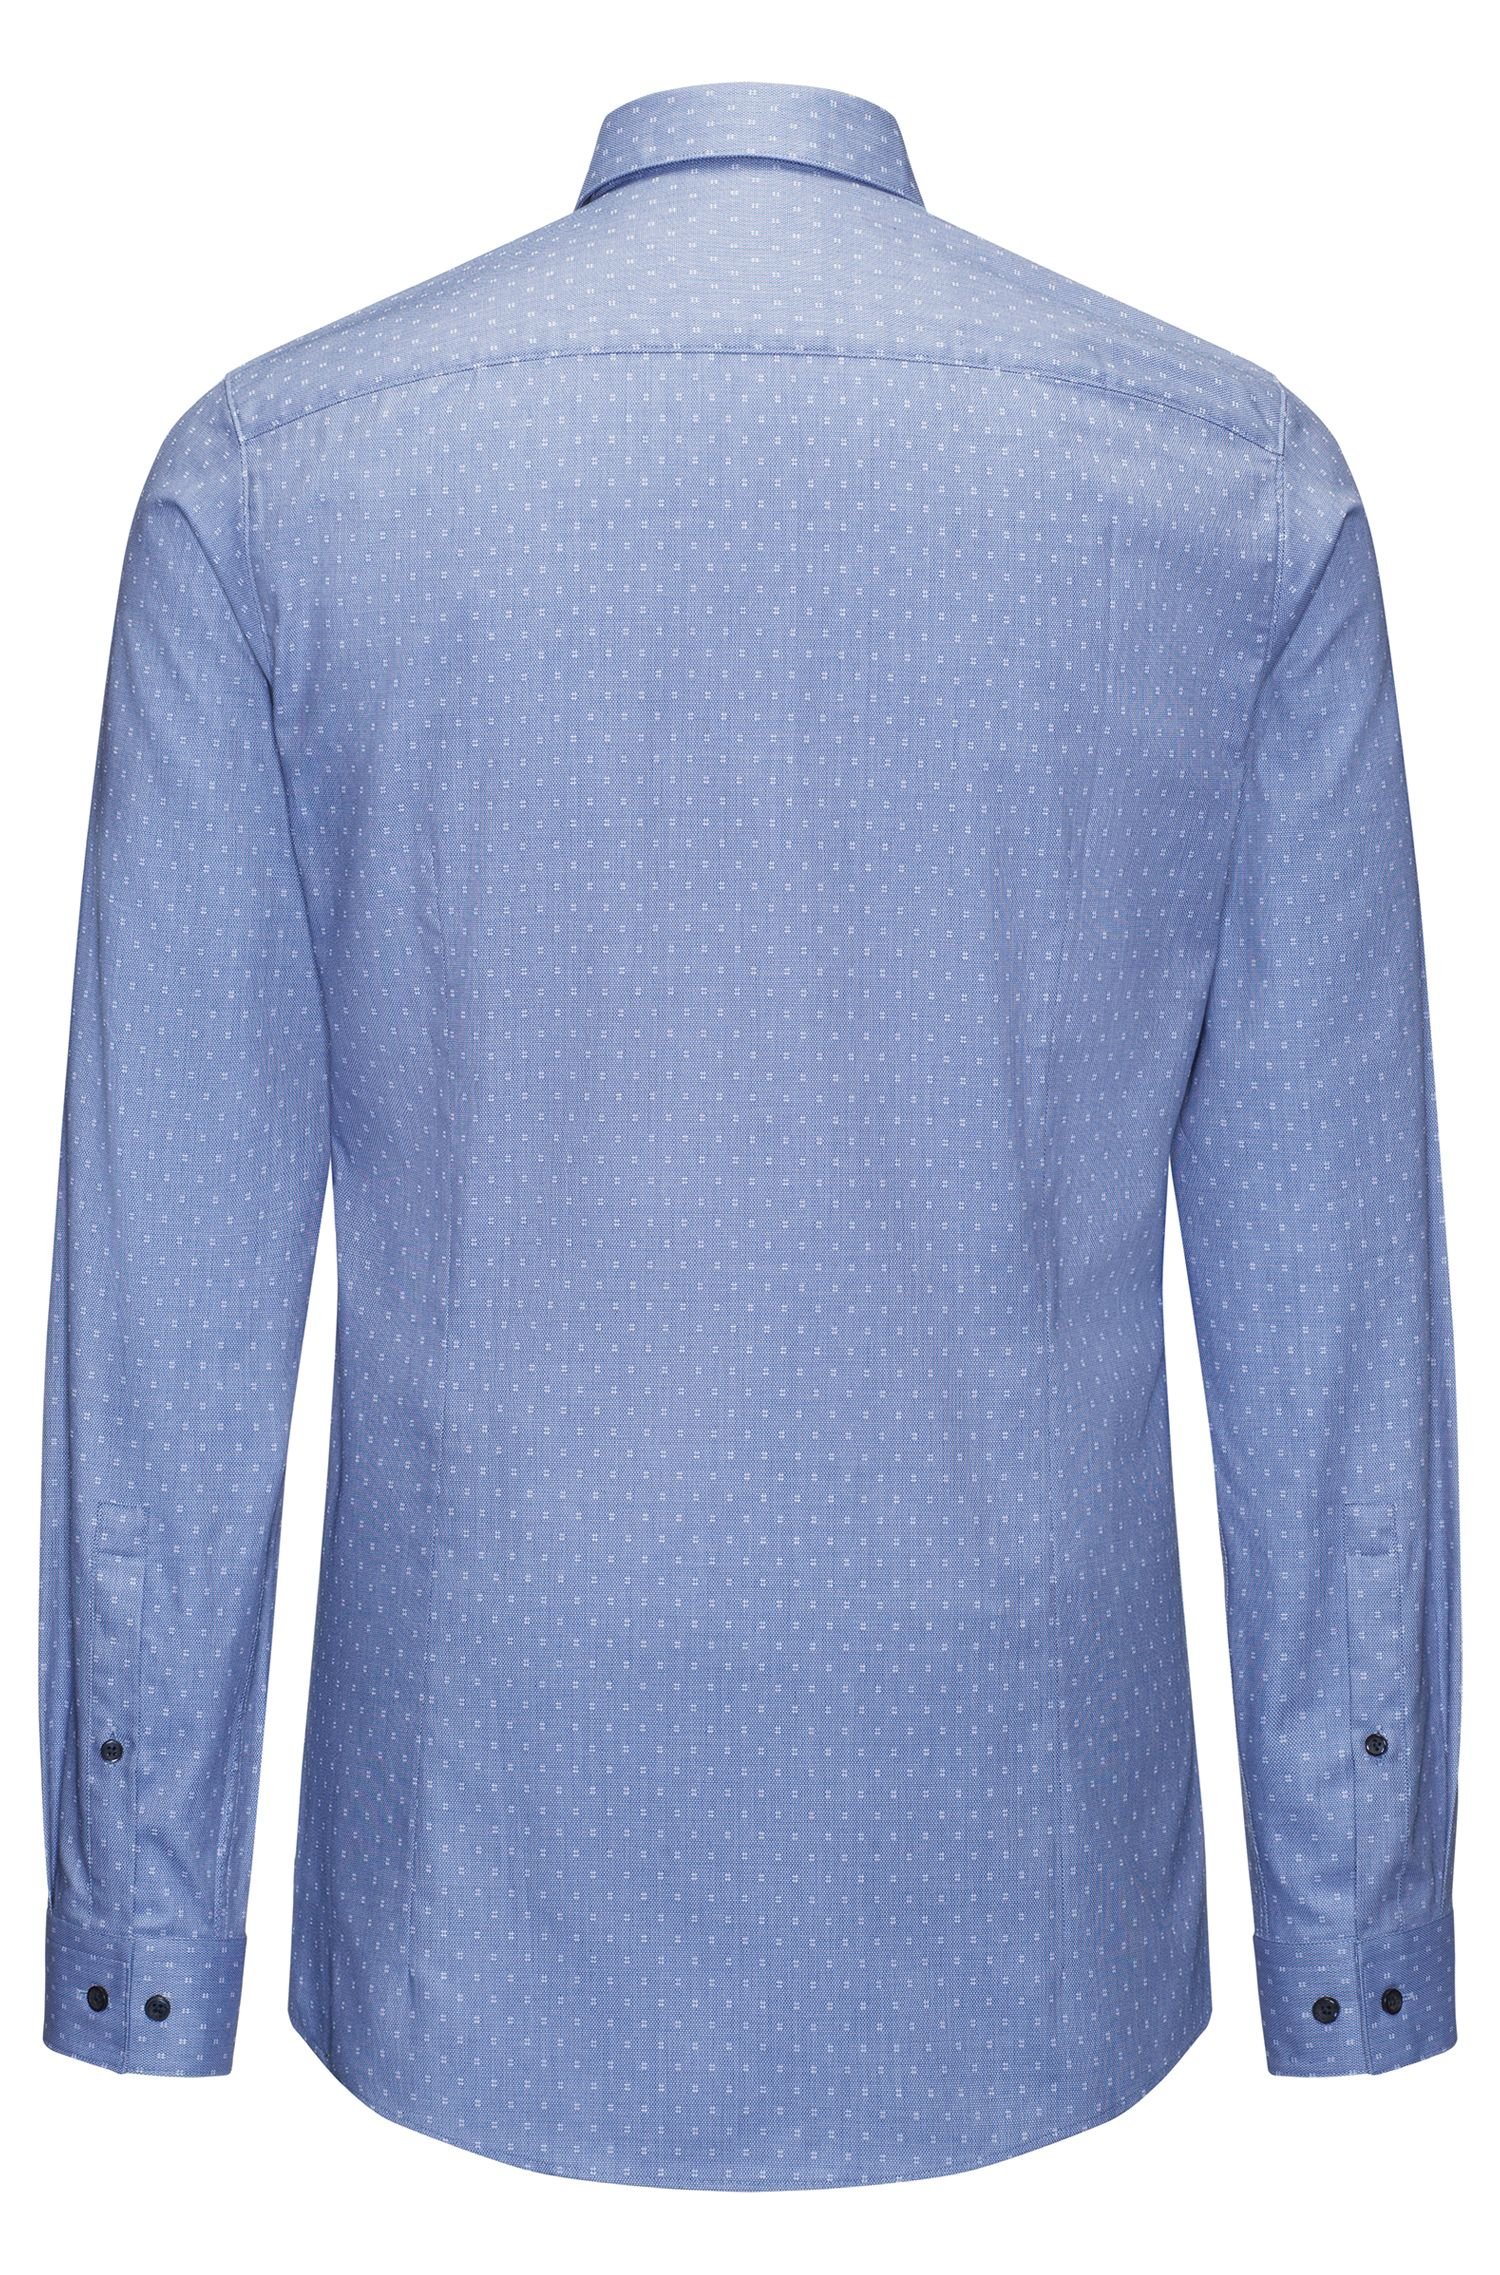 Hashtag Cotton Sport Shirt, Extra Slim Fit | Erriko